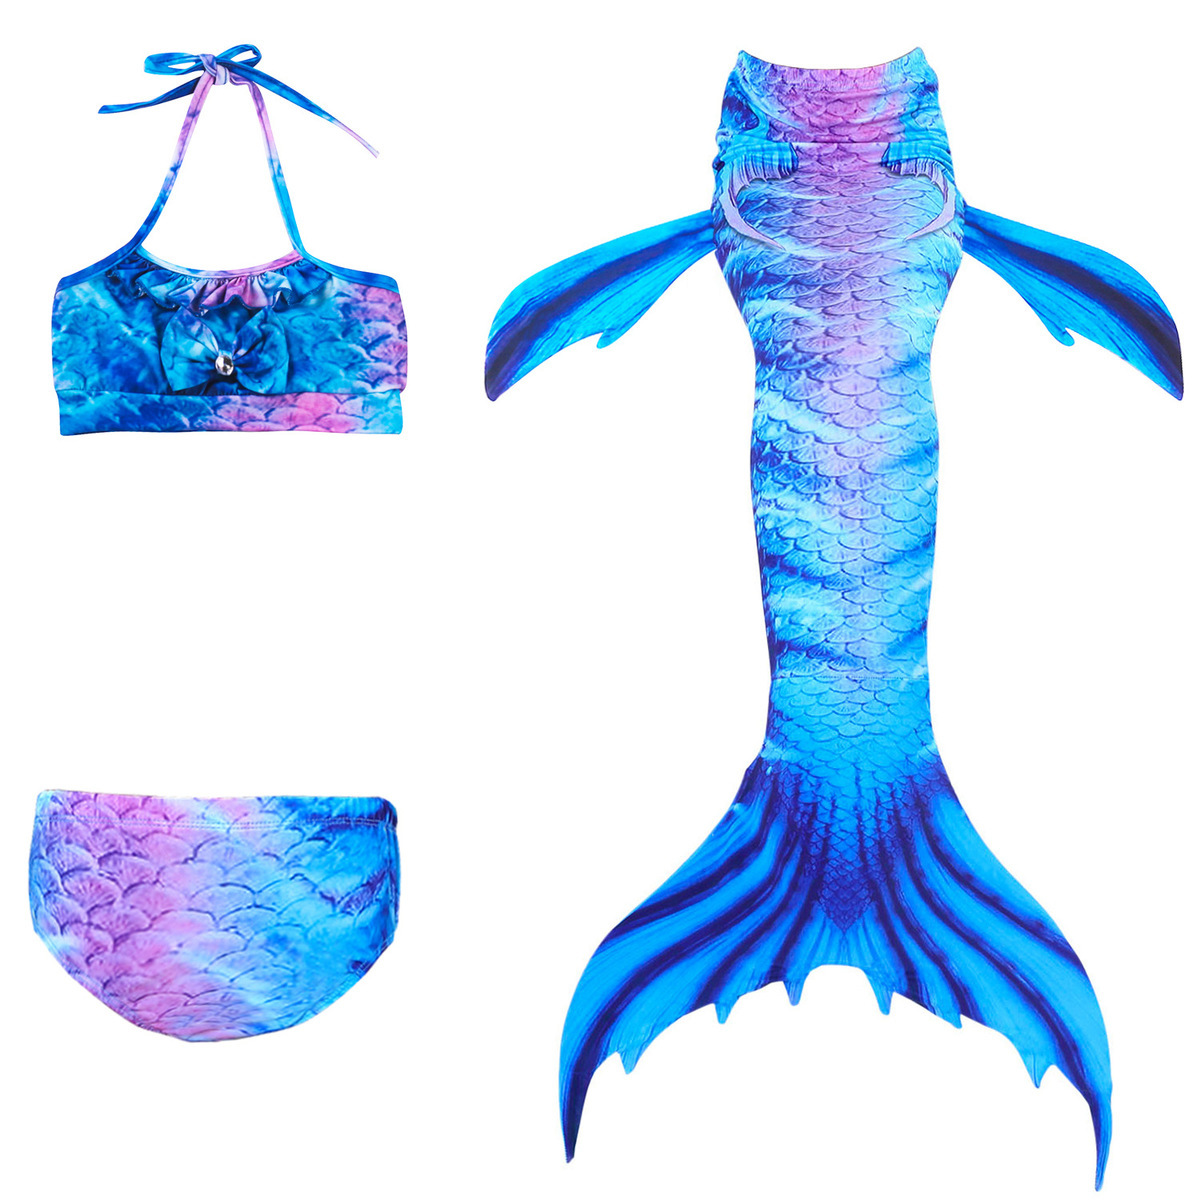 2018 New Children Mermaid Tails The Little Mermaid Ariel Swimsuit Bikini Set Summer Bathing Suit Party Cosplay Costume For Girls